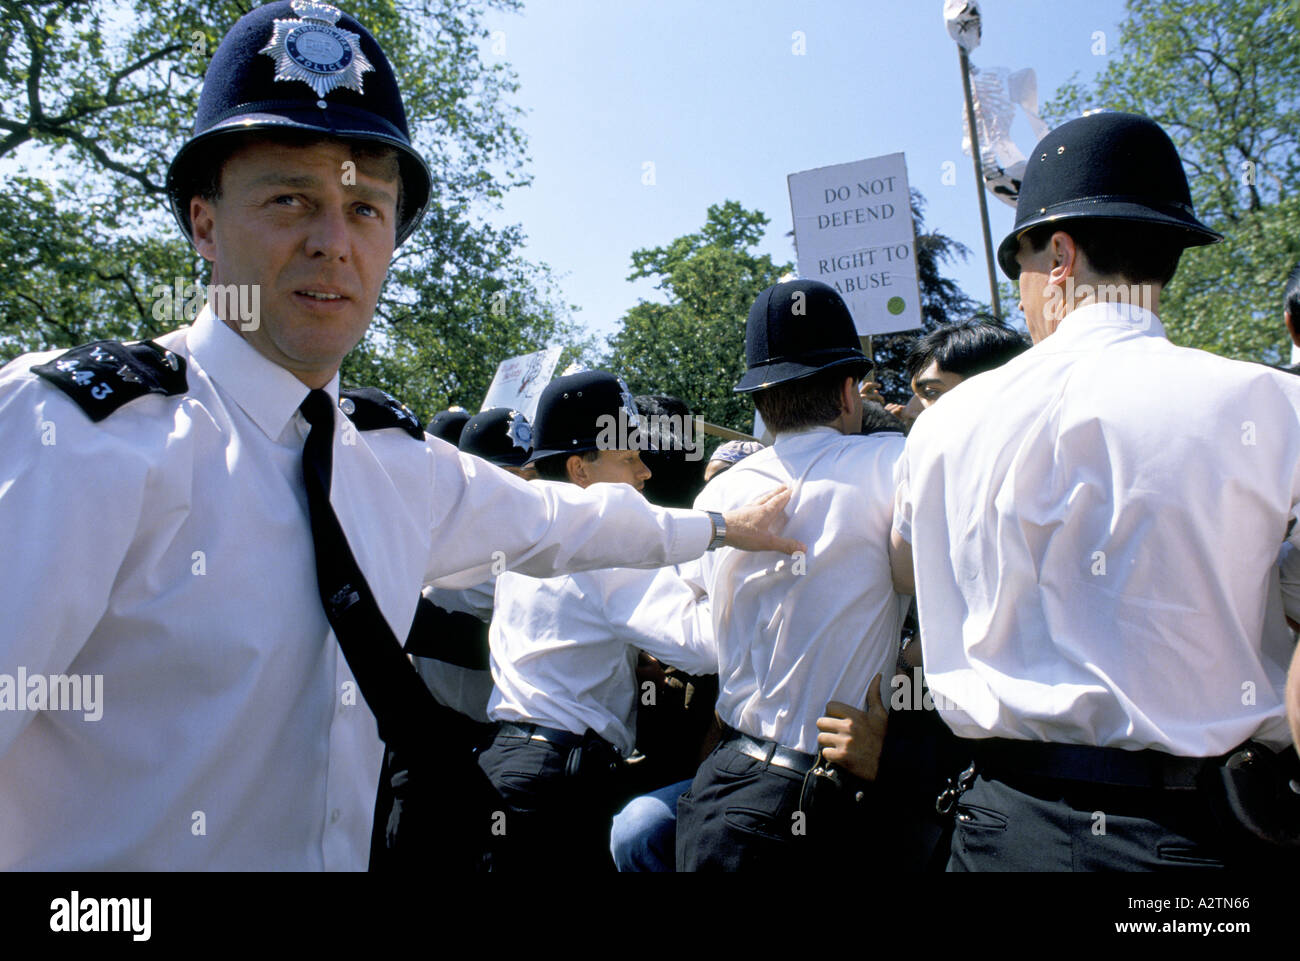 police at demo - Stock Image